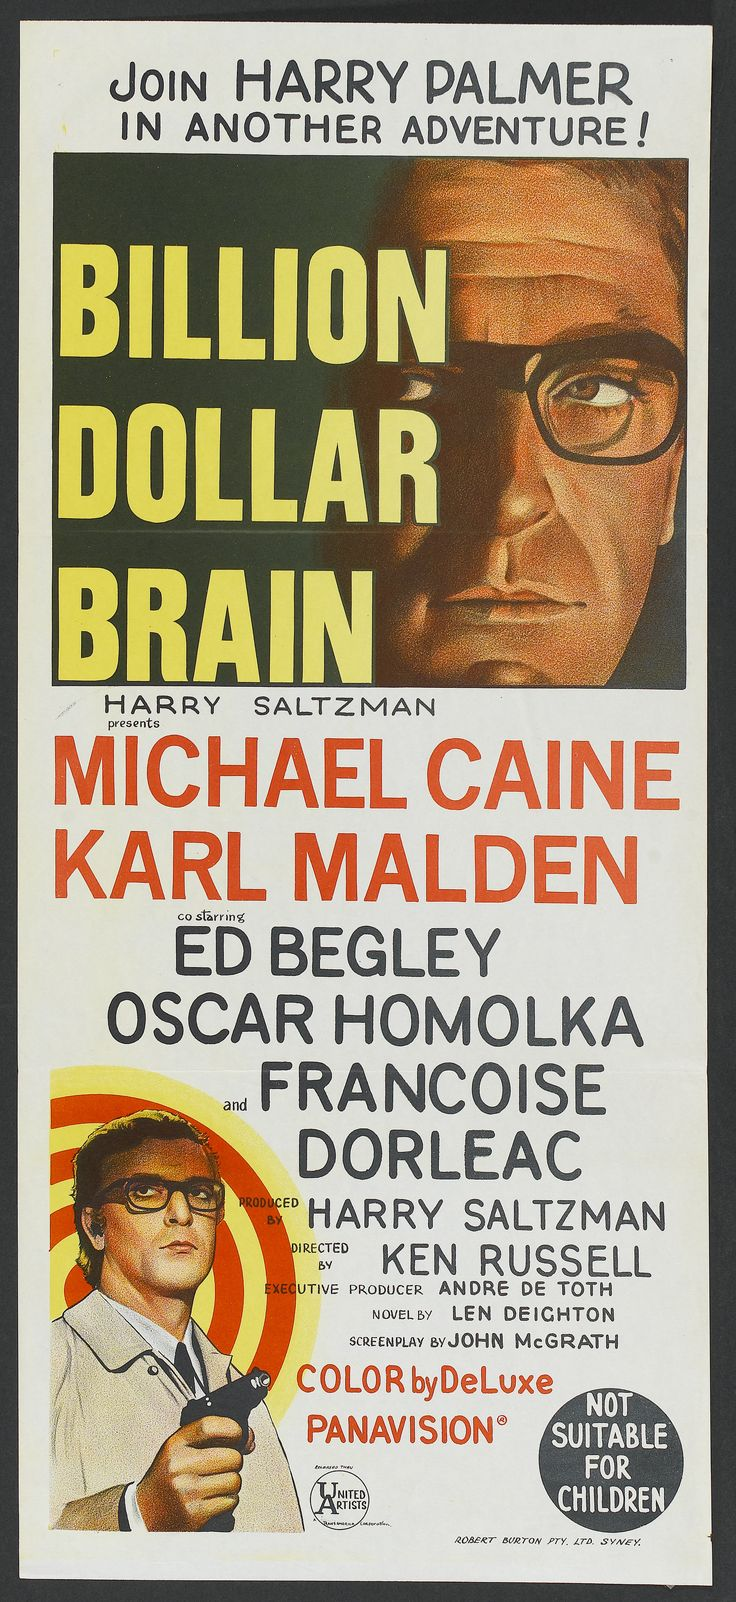 Billion Dollar Brain (1967) HD - Comedy, Thriller - Michael Caine, Karl Malden, Ed Begley, Françoise Dorléac, Susan George - Harry Palmer (Caine) is a former British secret agent who has taken up work as a private detective. An anonymous party hires him to deliver a seemingly normal package to Helsinki. However, he learns that he has been deceived into working for the Secret Service again.